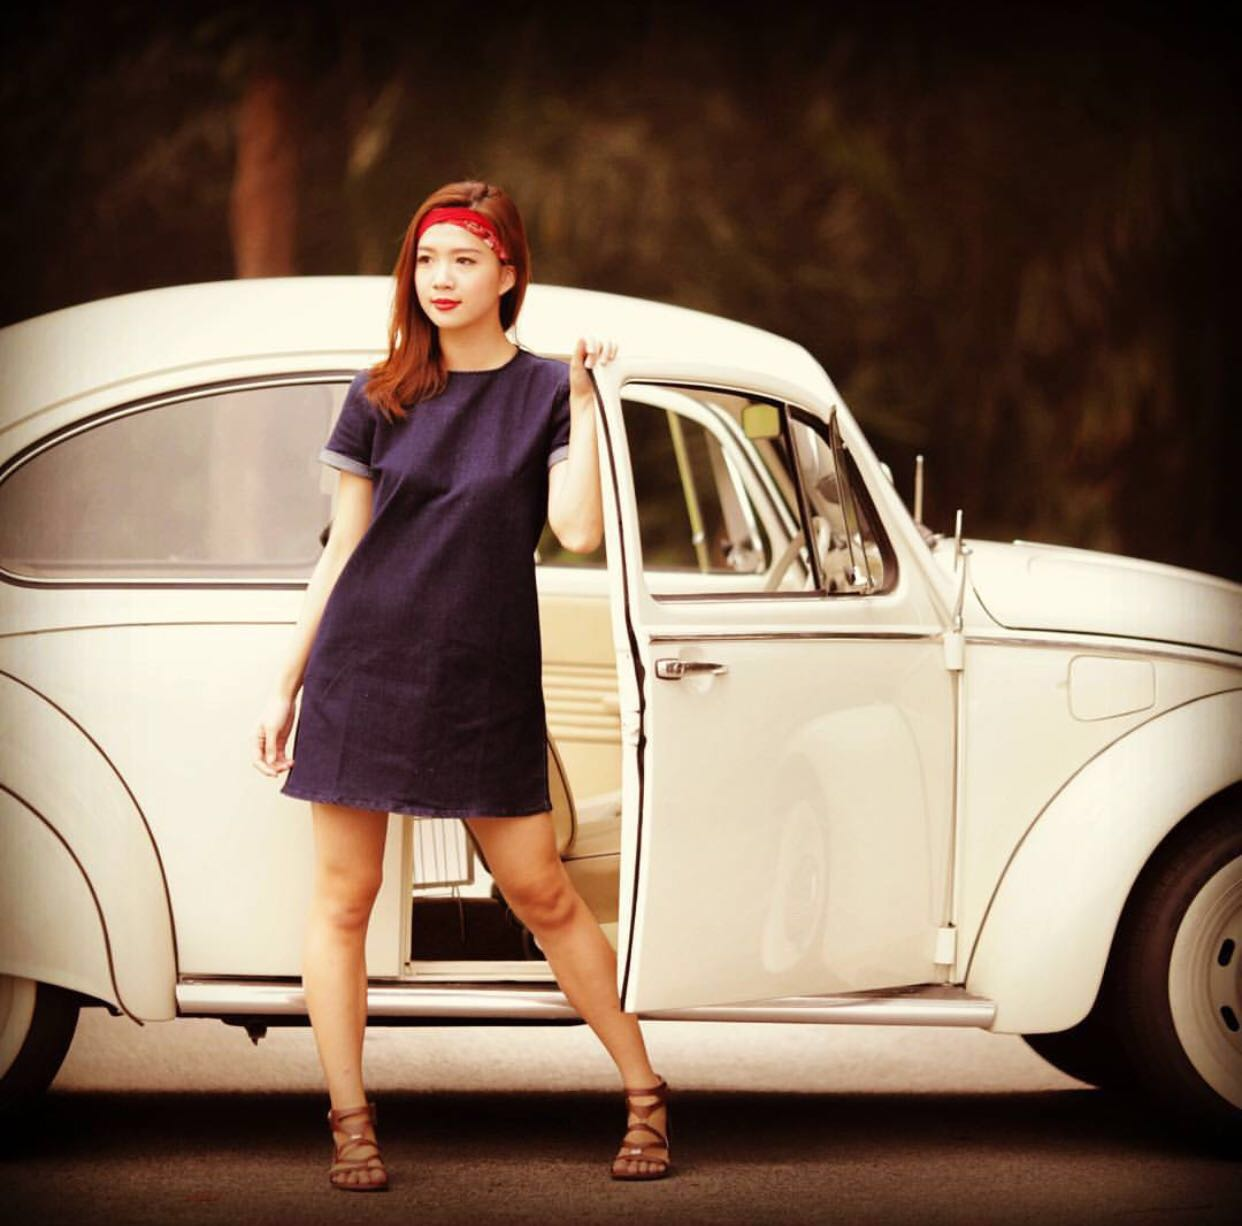 Classic Vintage Car Rental Photoshoot Events Wedding Cars